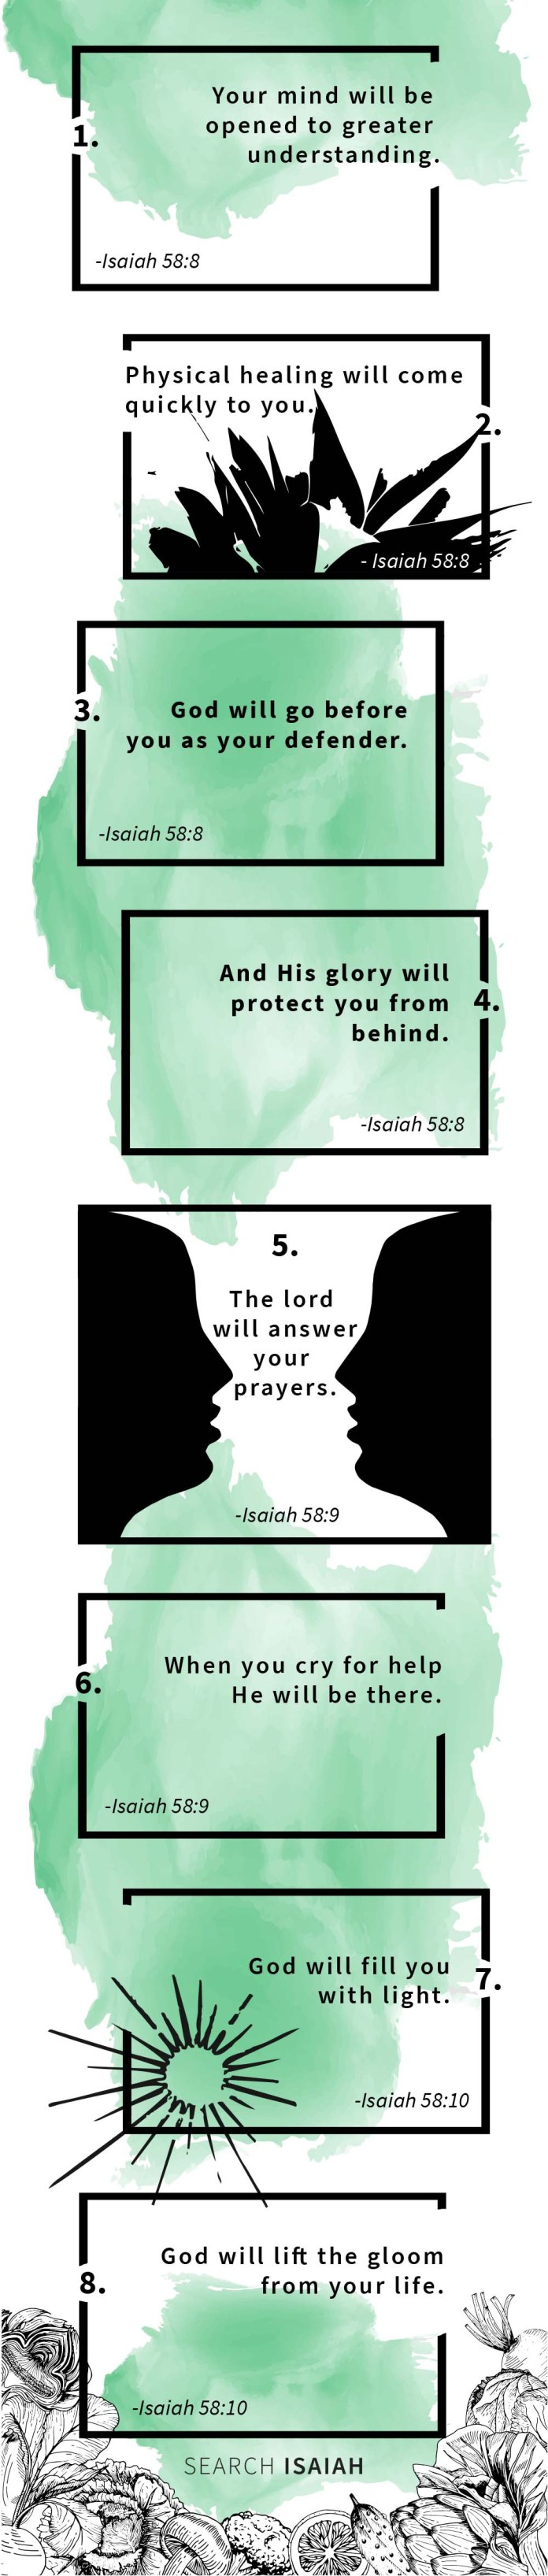 Search Isaiah - 8 Promises Made for True Fasting in The Book of Isaiah